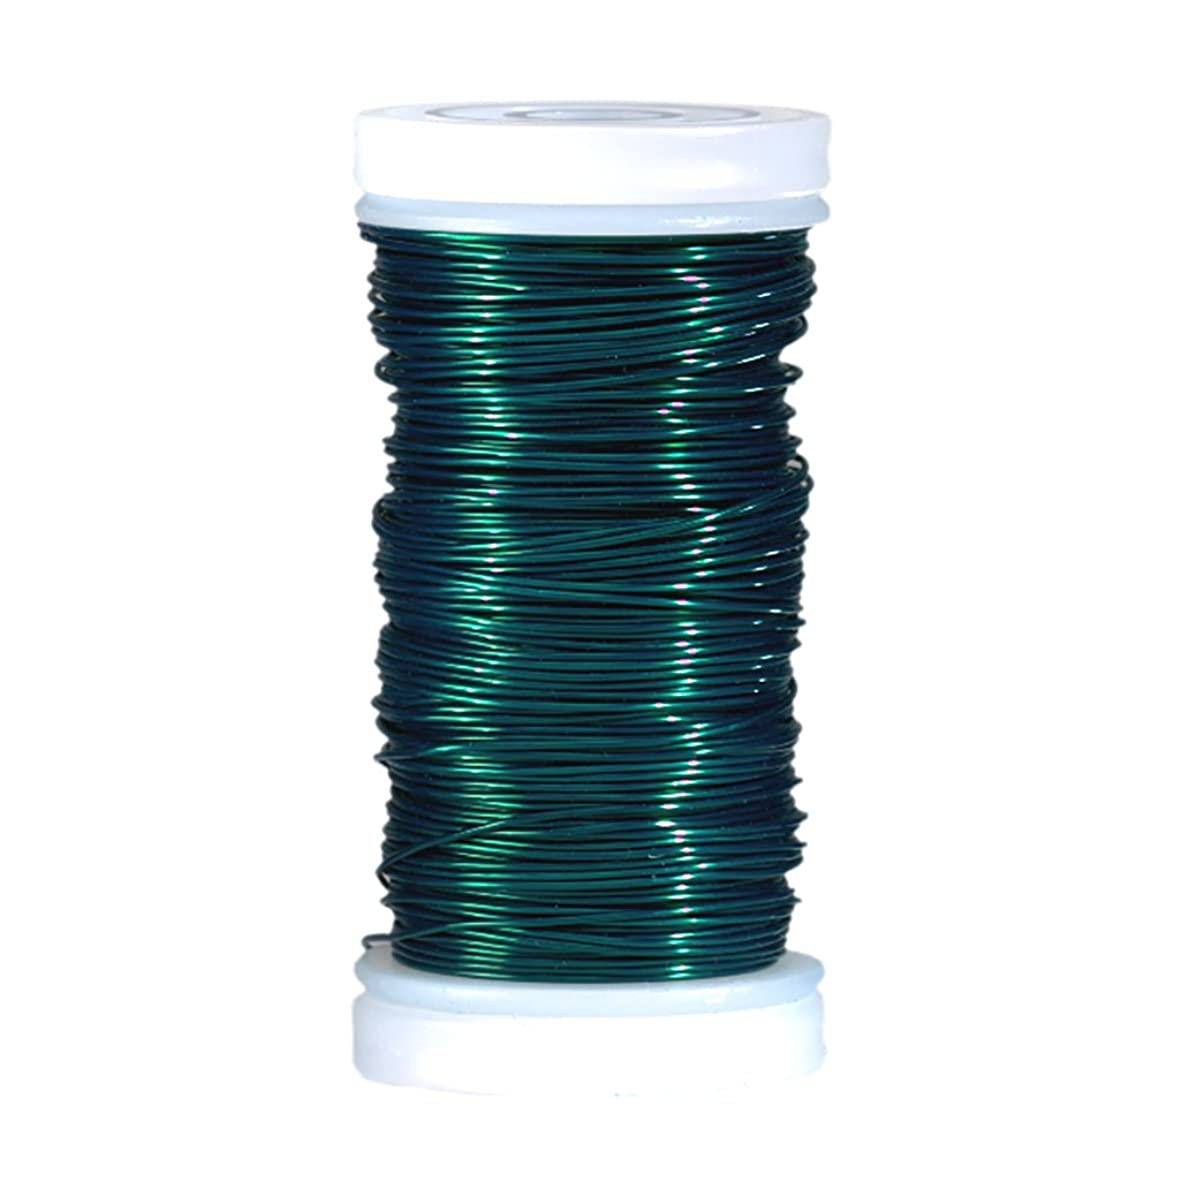 Efco 0.5 mm x 25 m Coloured Copper Wire, Green